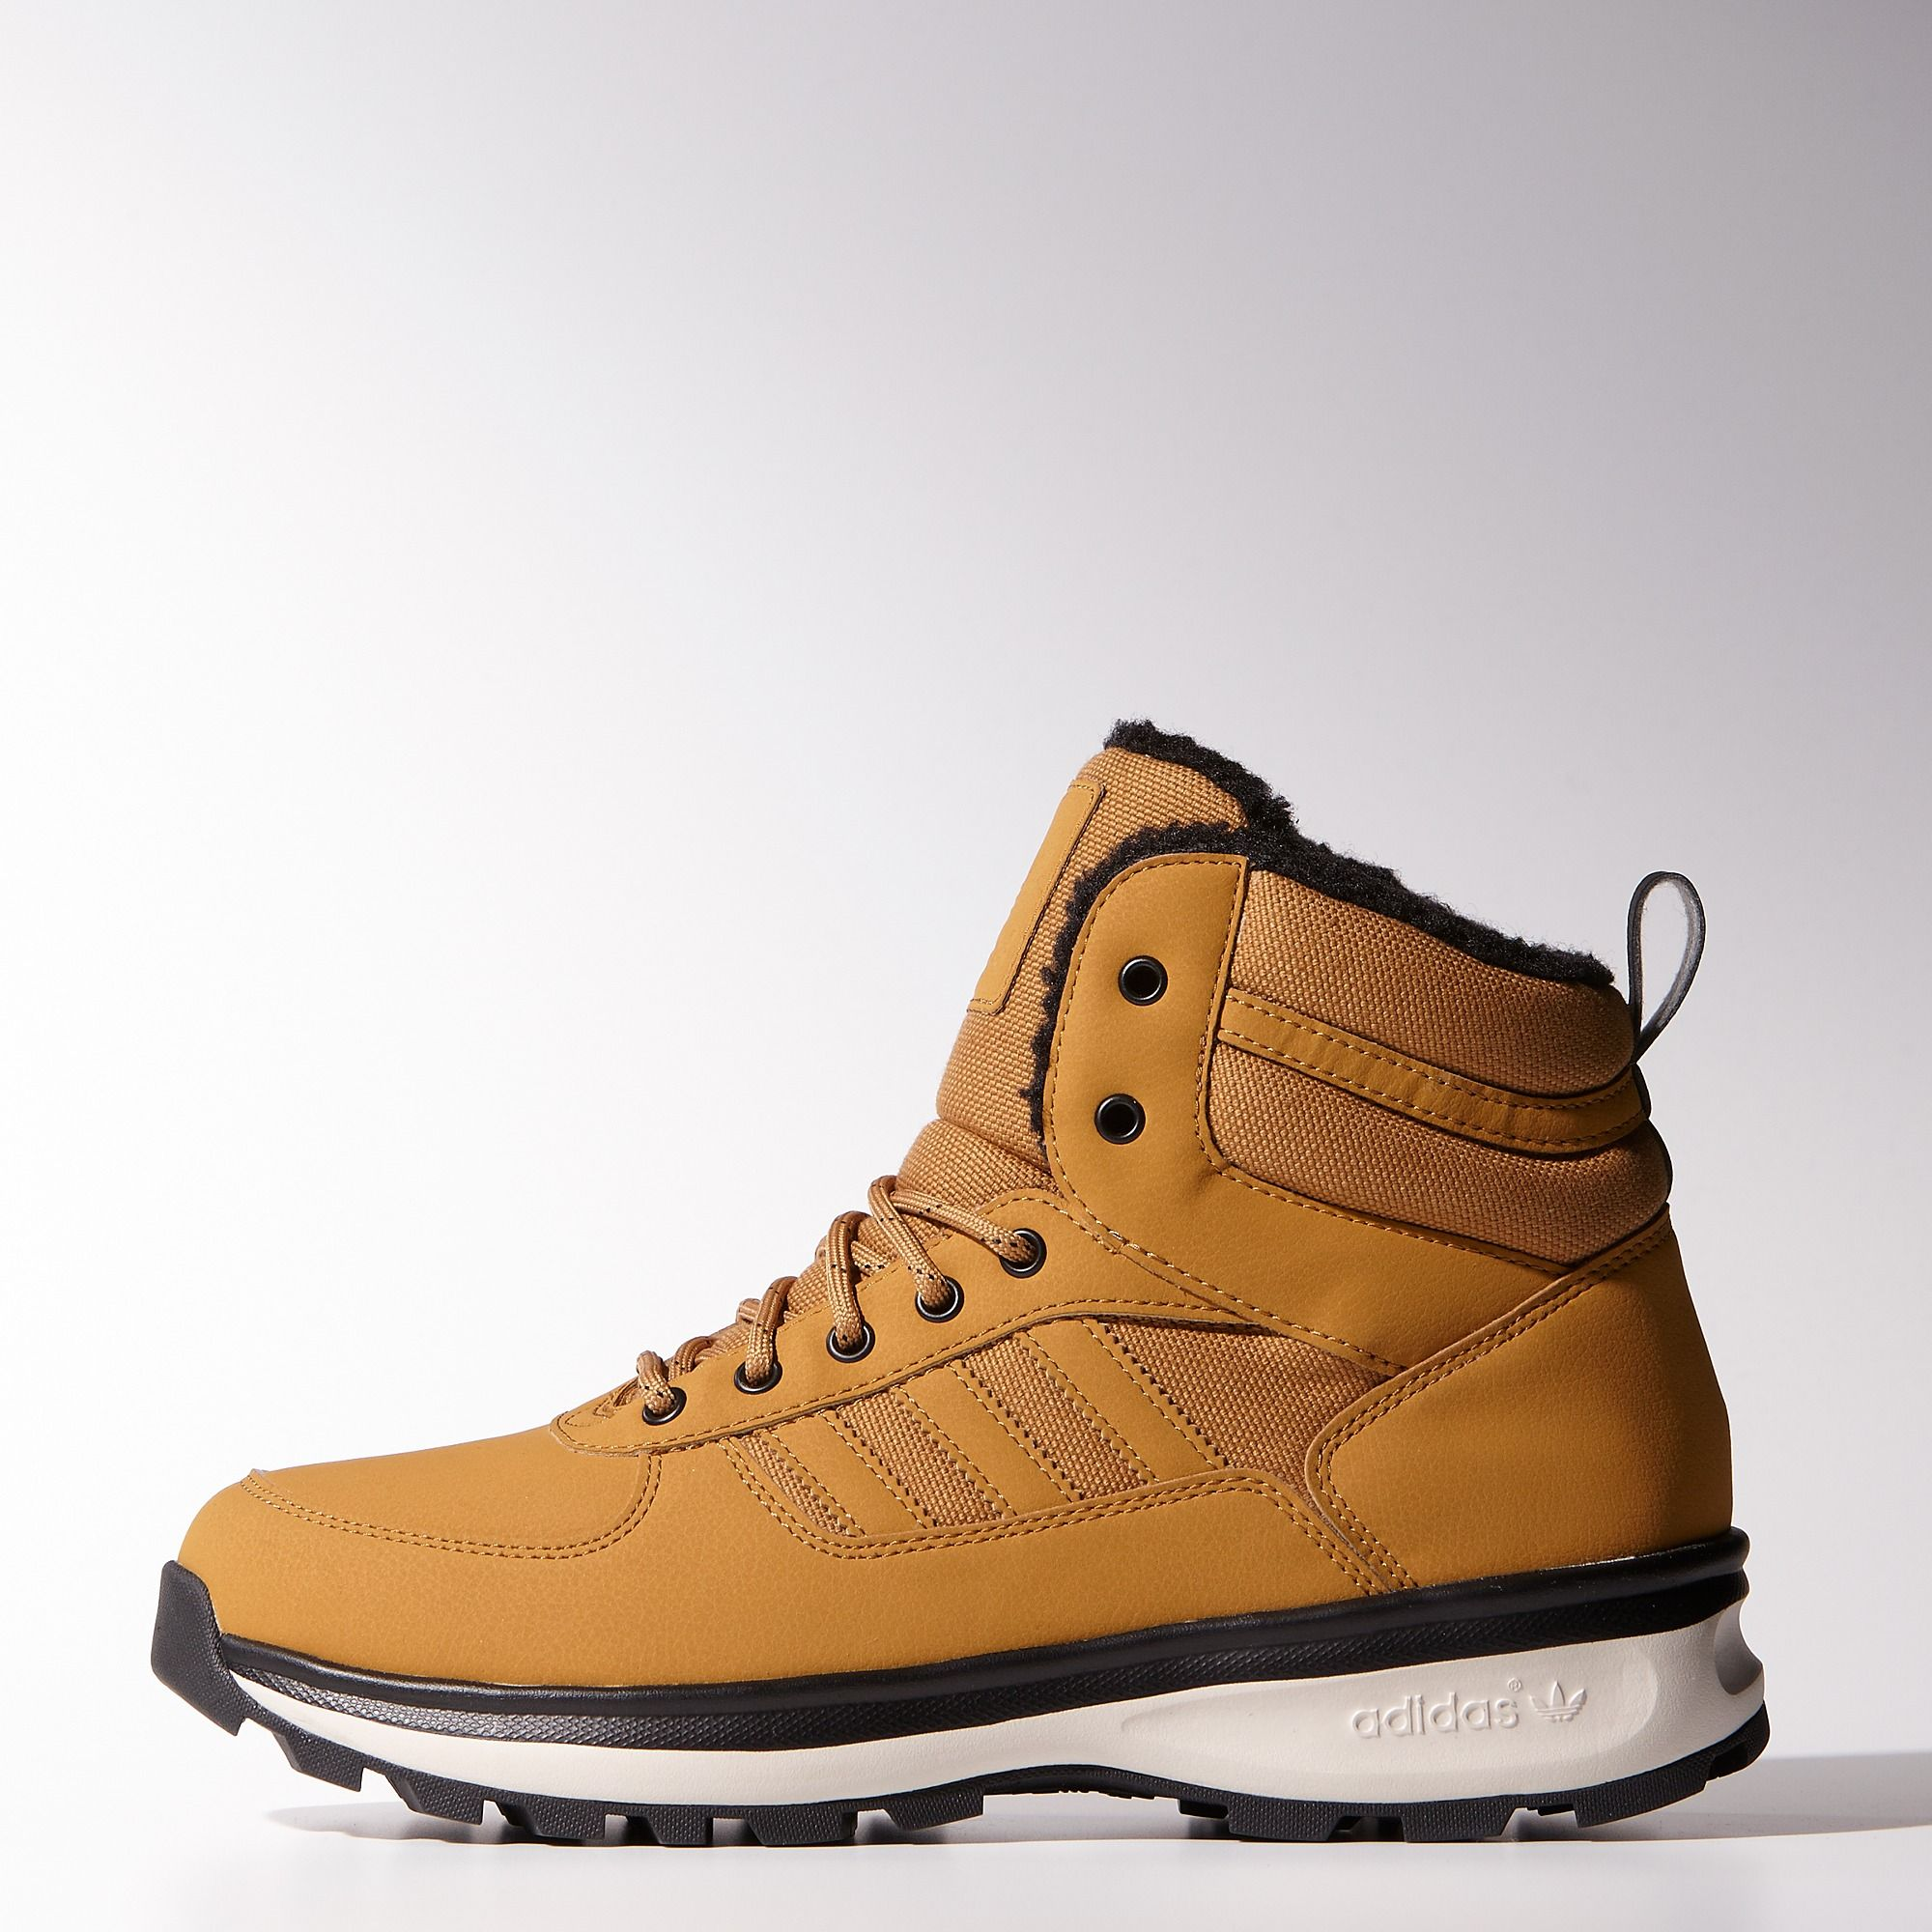 para justificar Arte petróleo  adidas Chasker Boots   adidas US (With images)   Adidas boots, Shoes mens,  Boots